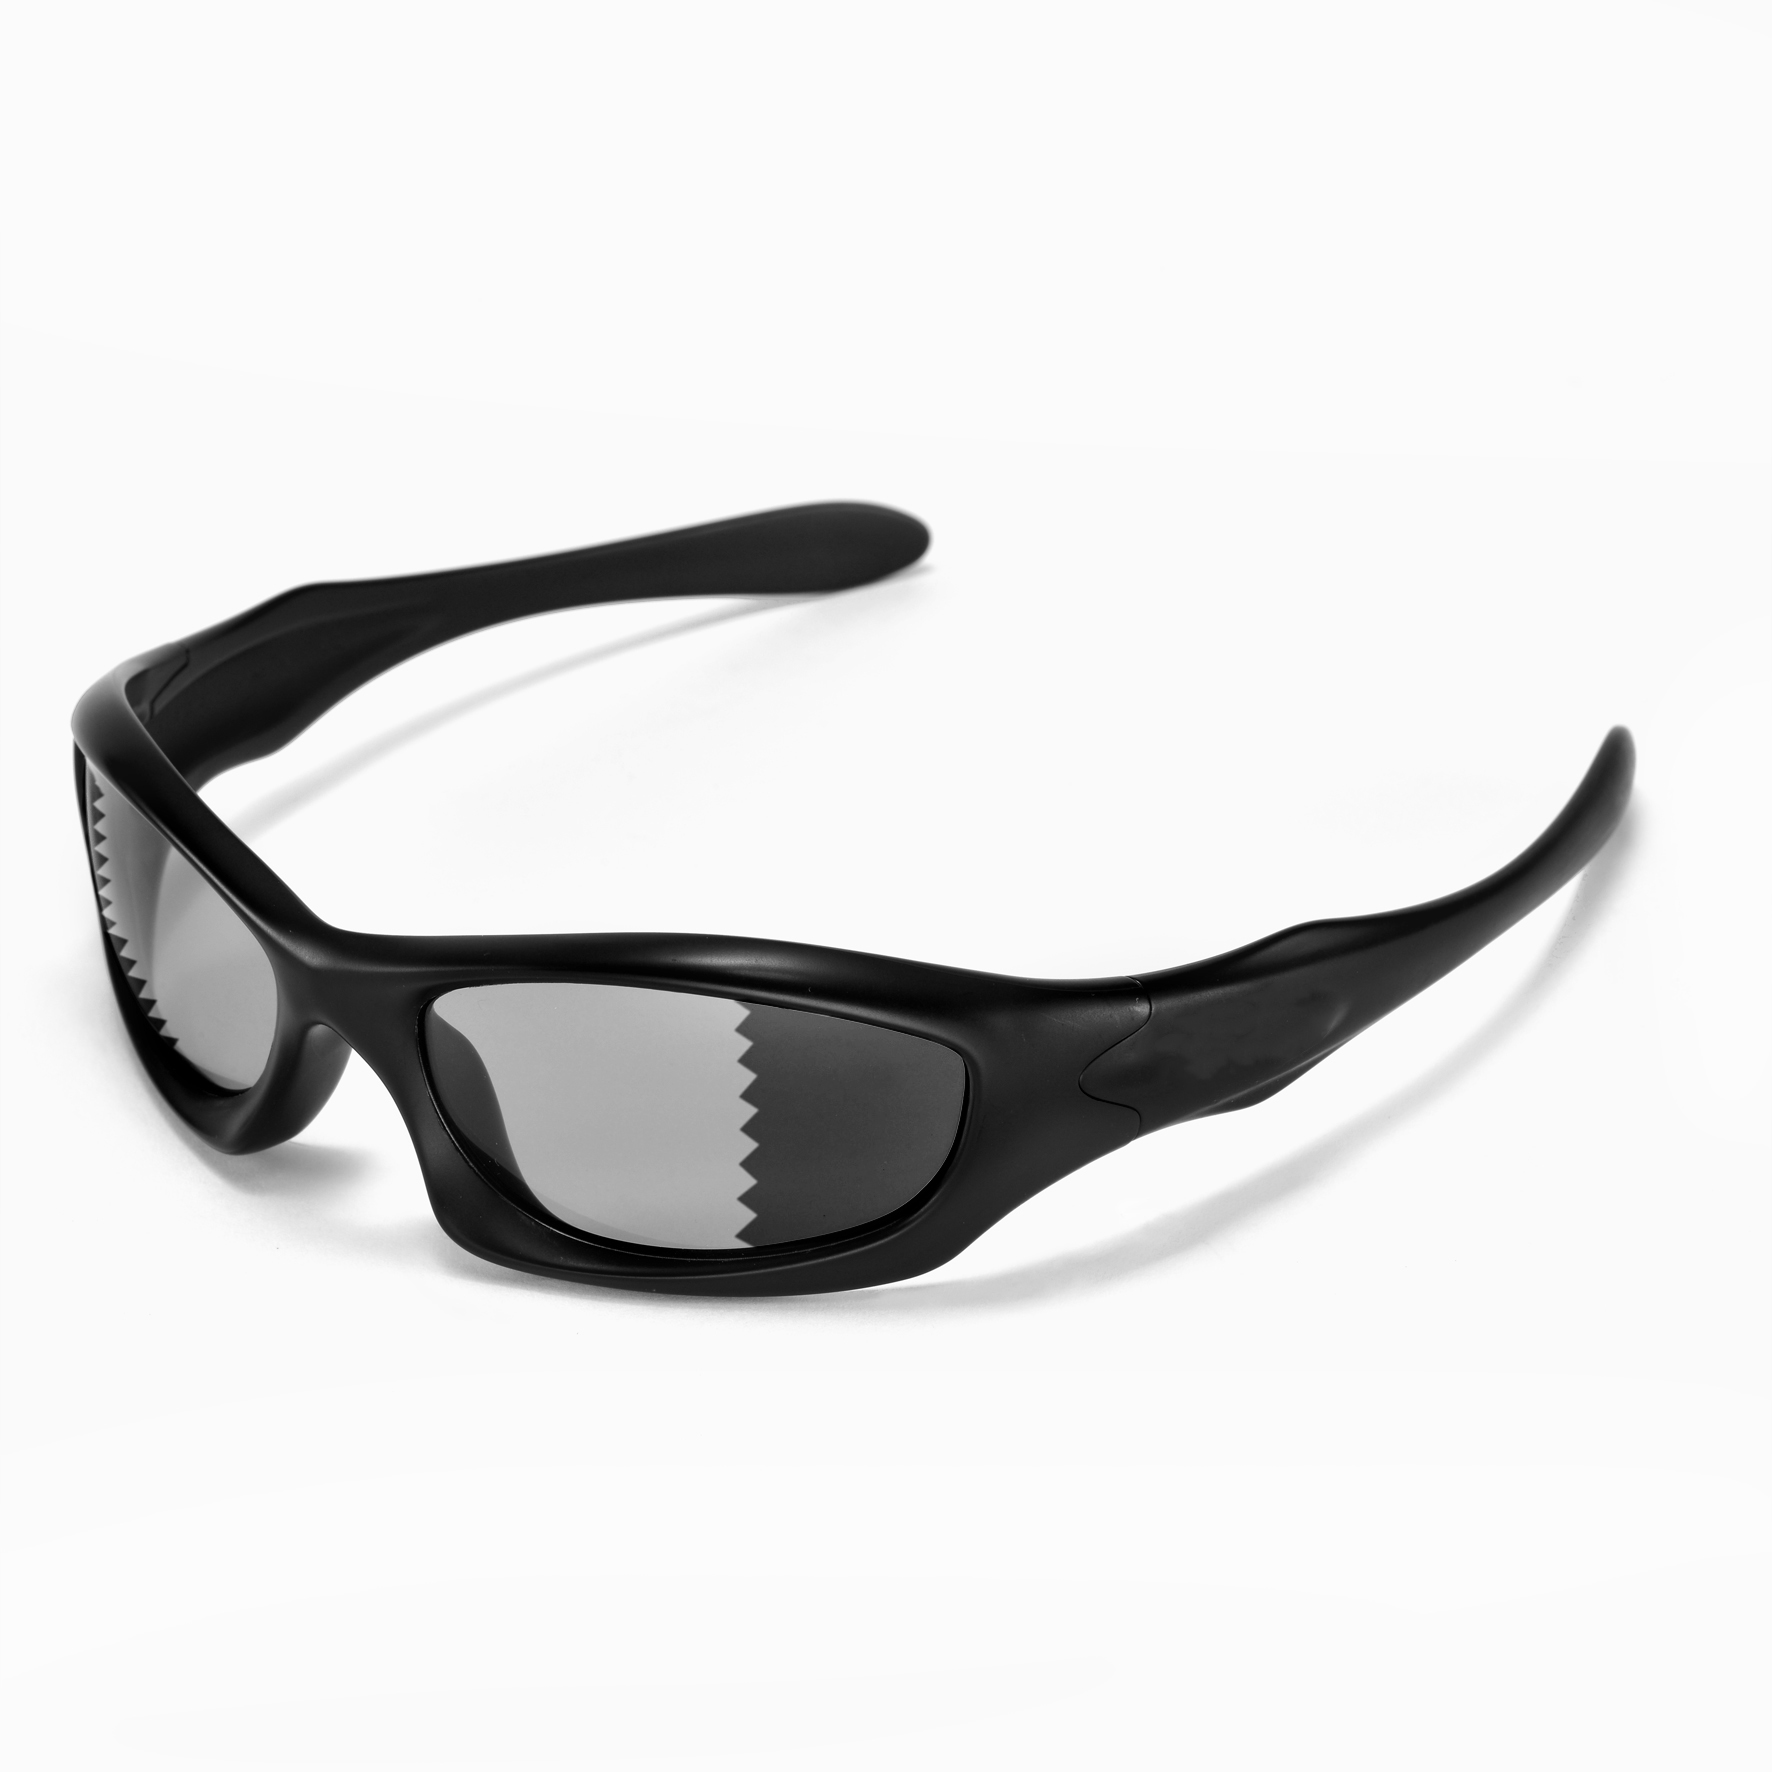 New Walleva Polarized Transition/Photochromic Lenses For Oakley Monster Dog